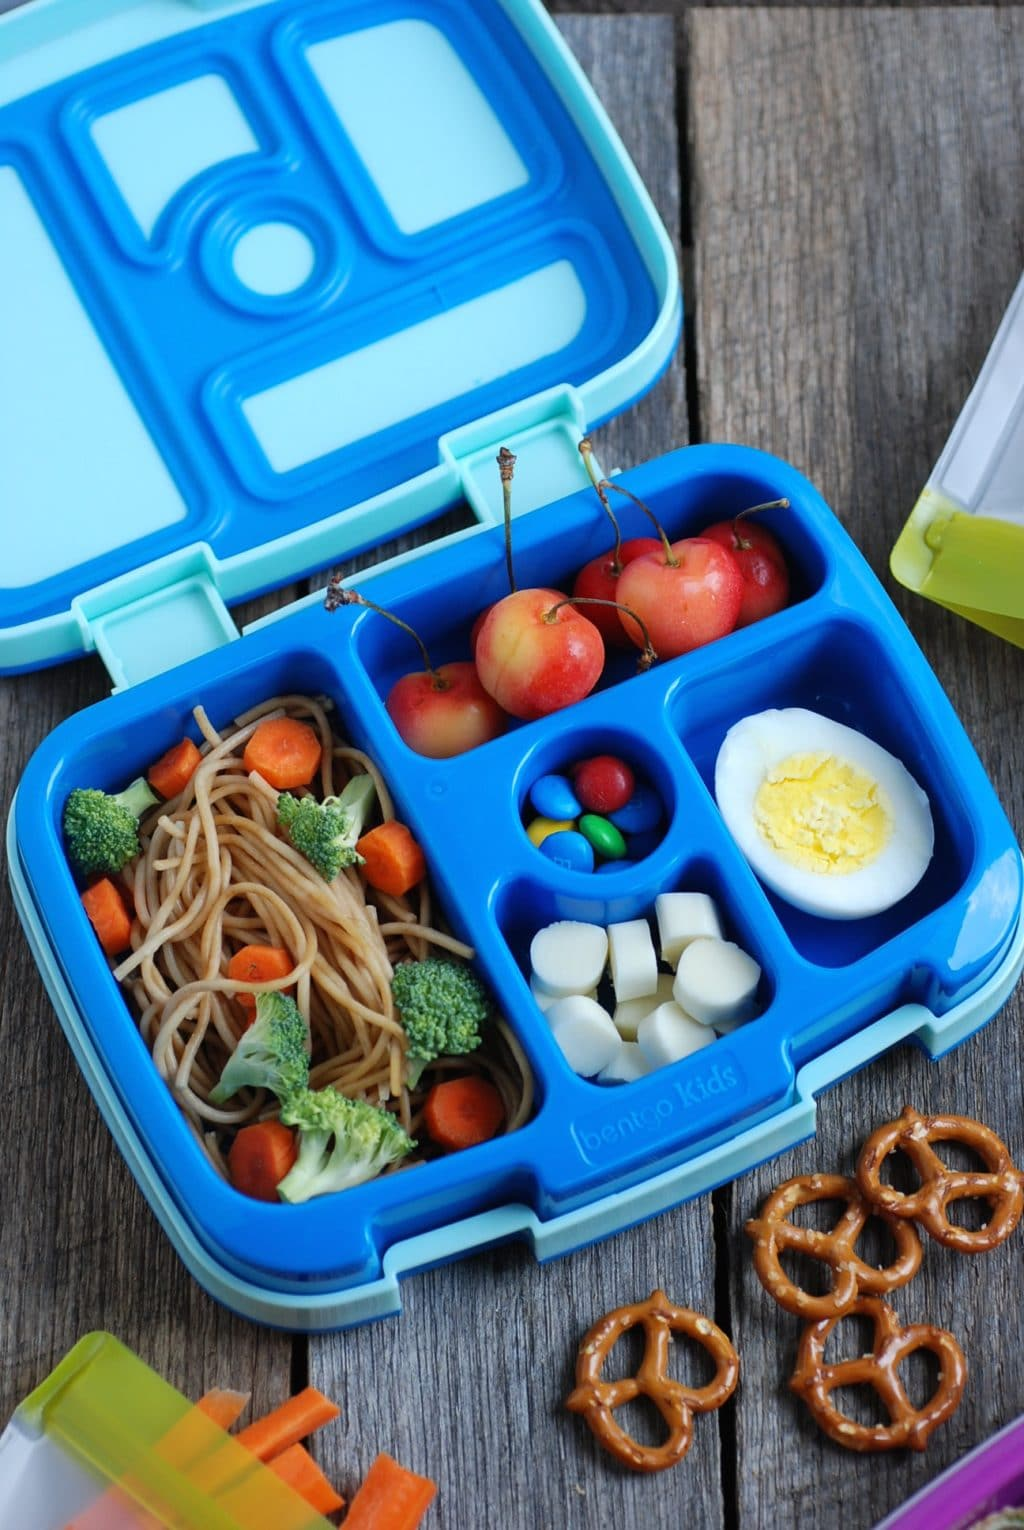 My Favorite Lunchbo Real Mom Nutrition